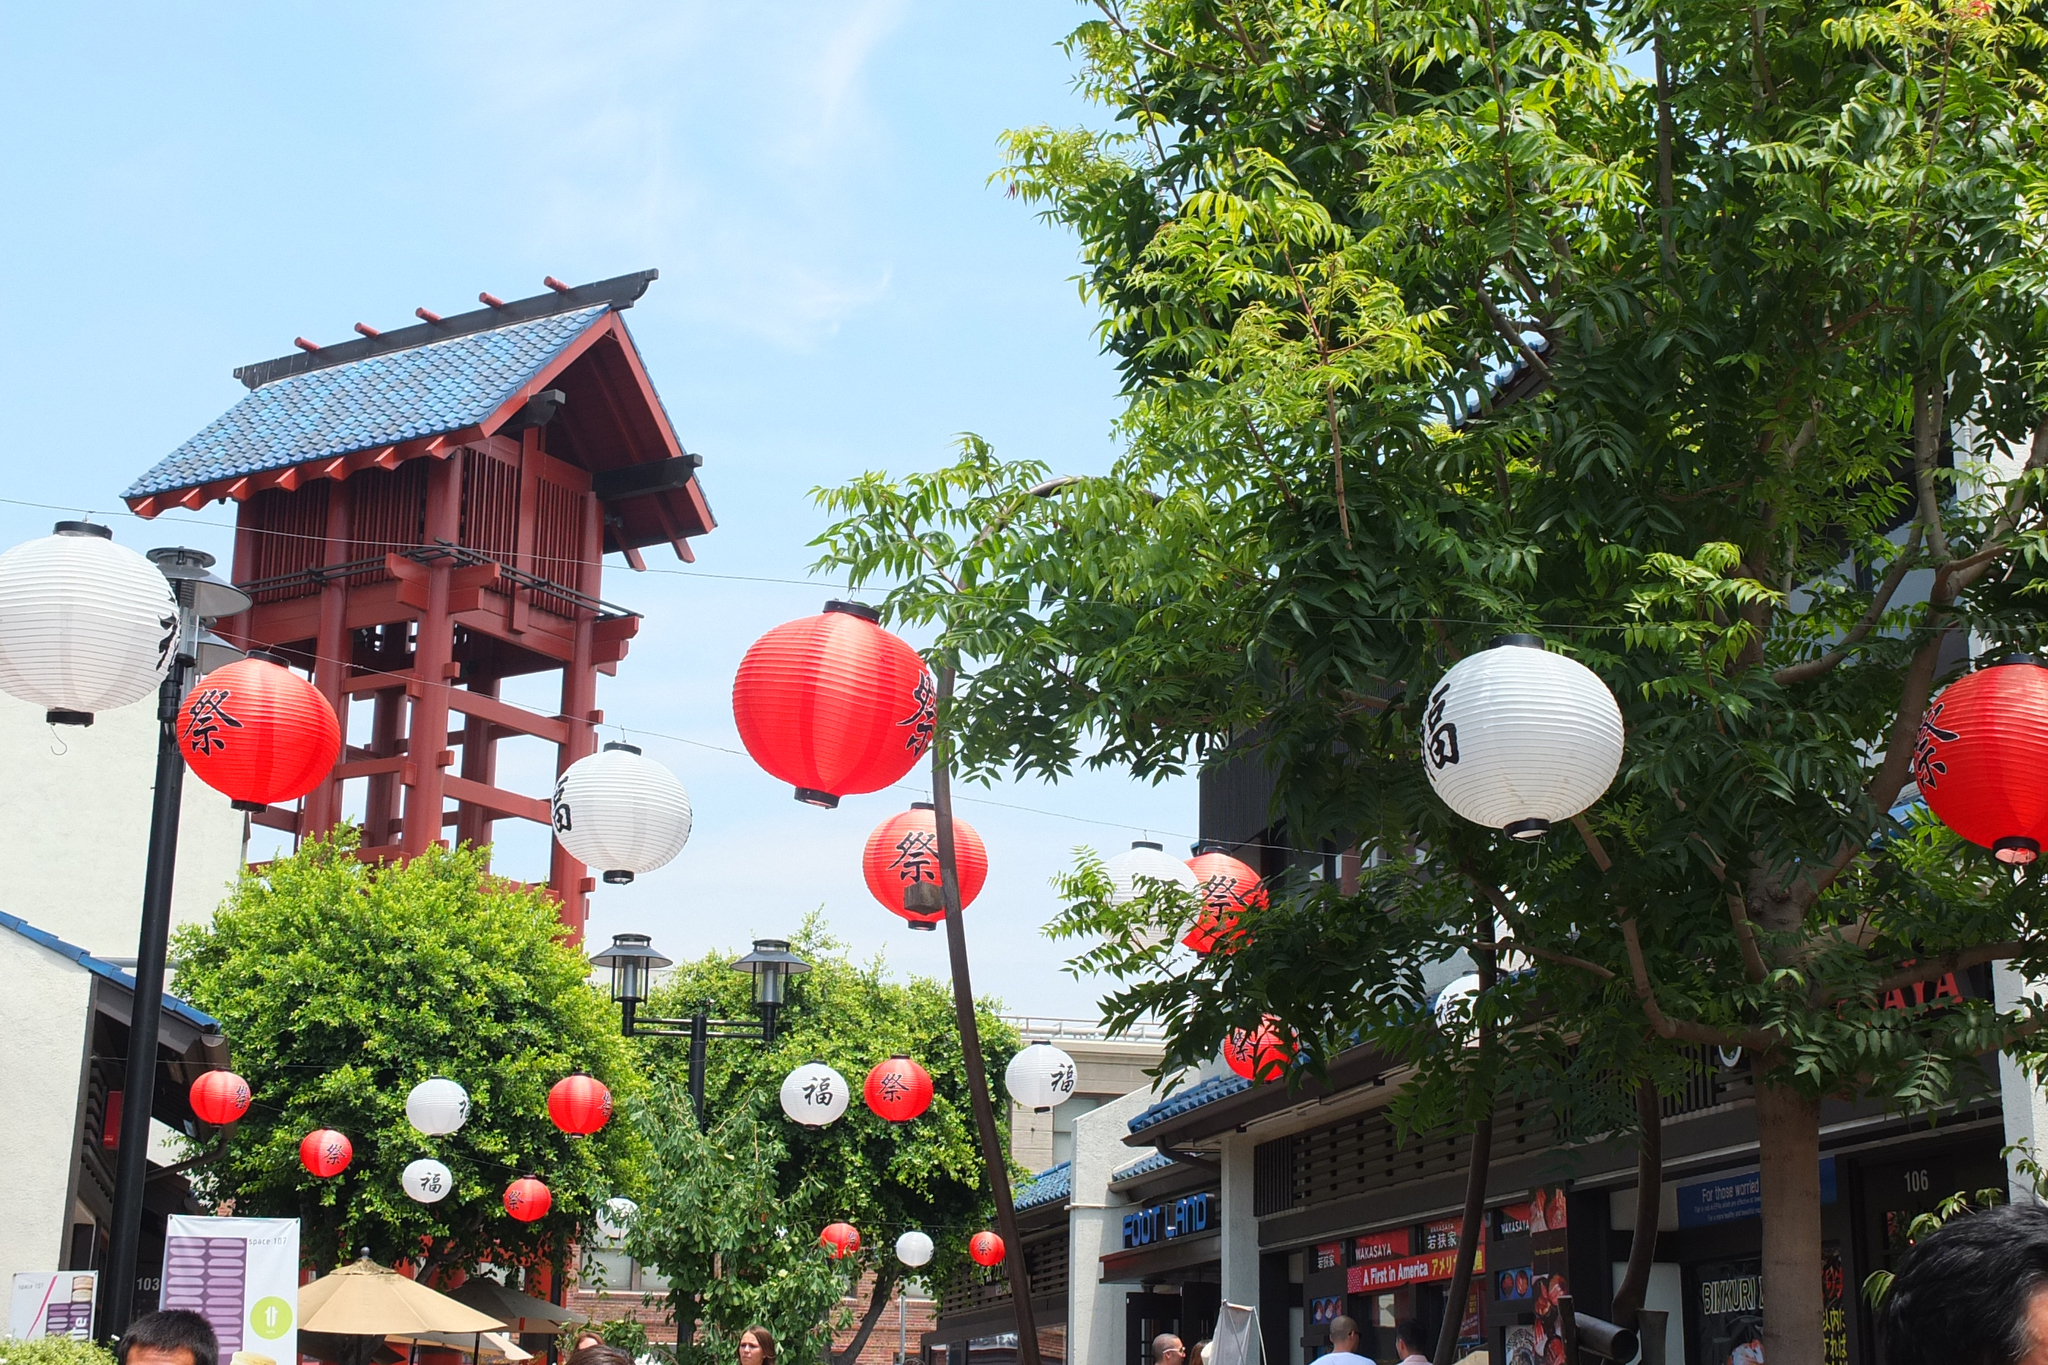 A guide to Little Tokyo